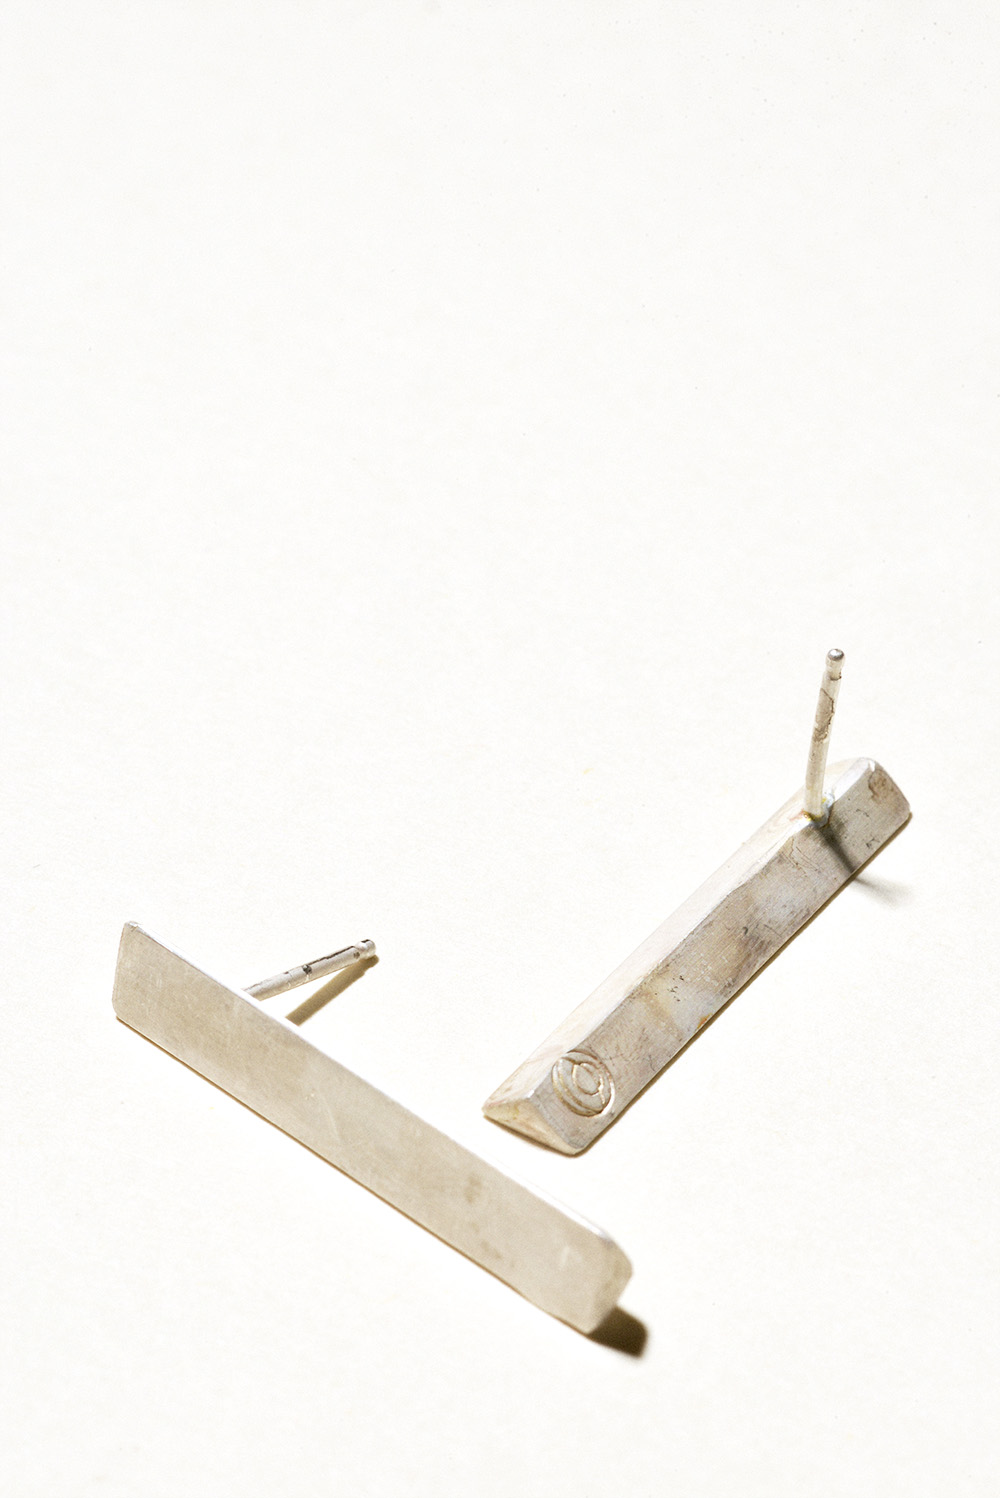 Long Prism Earrings - 30mm x 5mmSterling Silver, Raw FinishHand Smithed$75